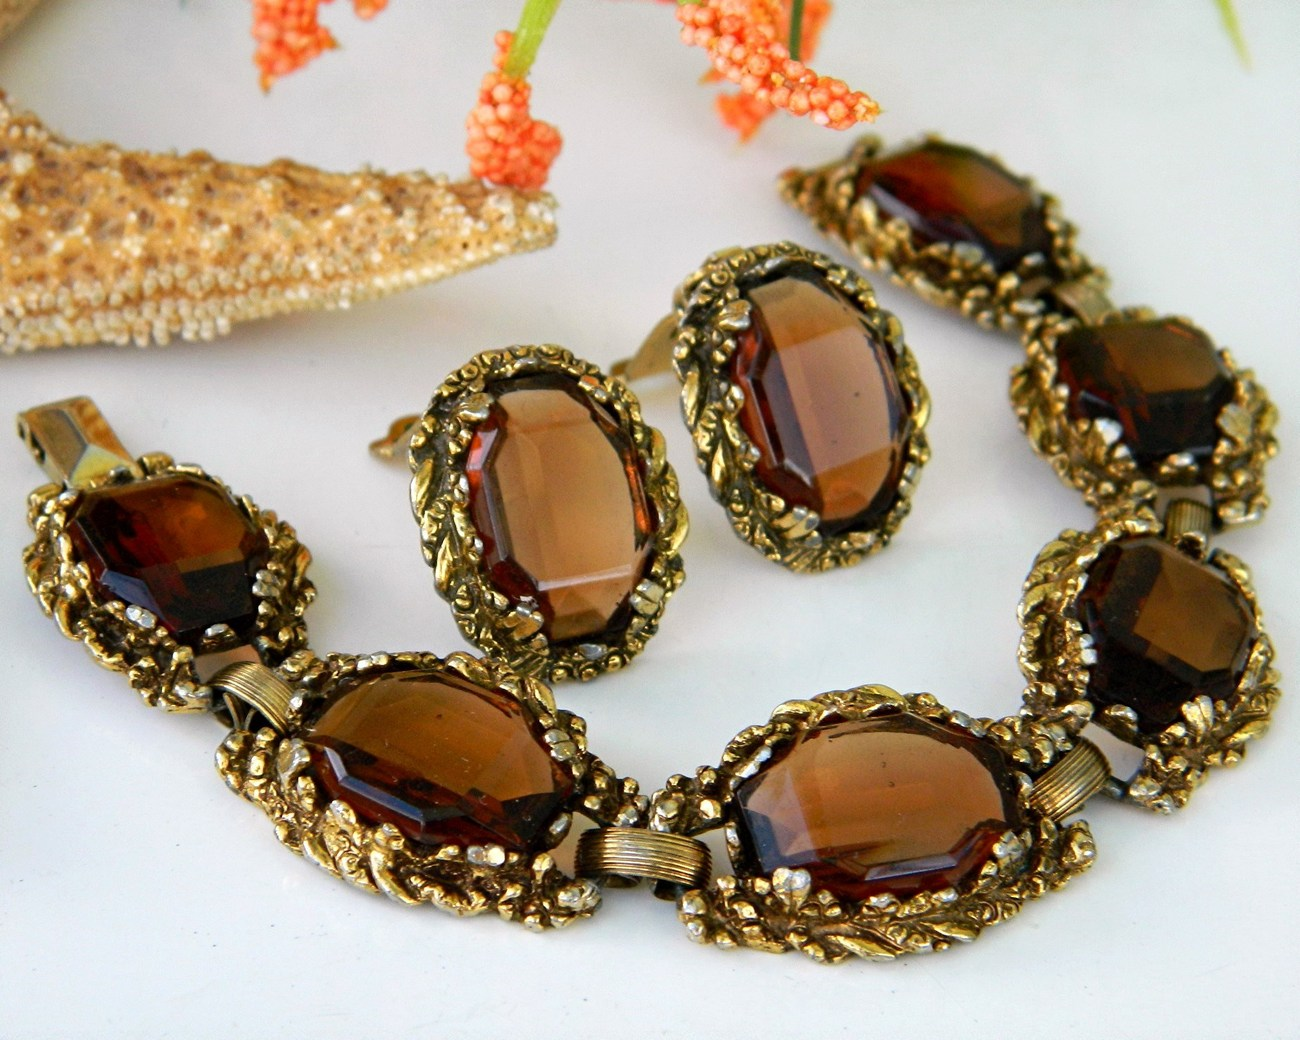 Vintage_brown_smoky_quartz_link_bracelet_earrings_demi_parure